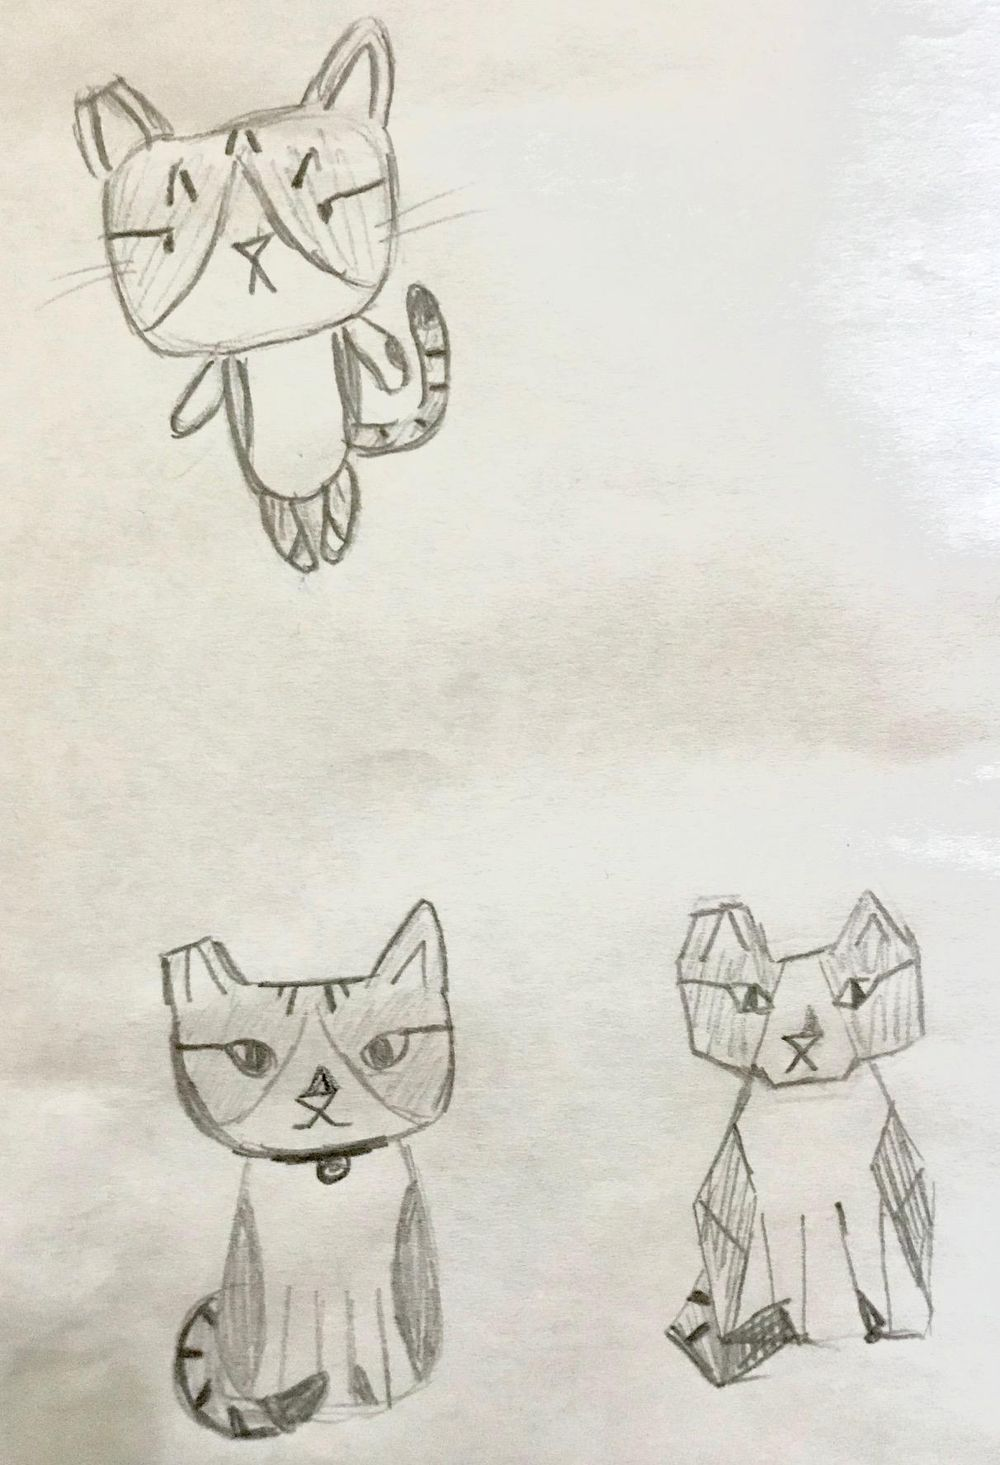 draw my cat - image 2 - student project